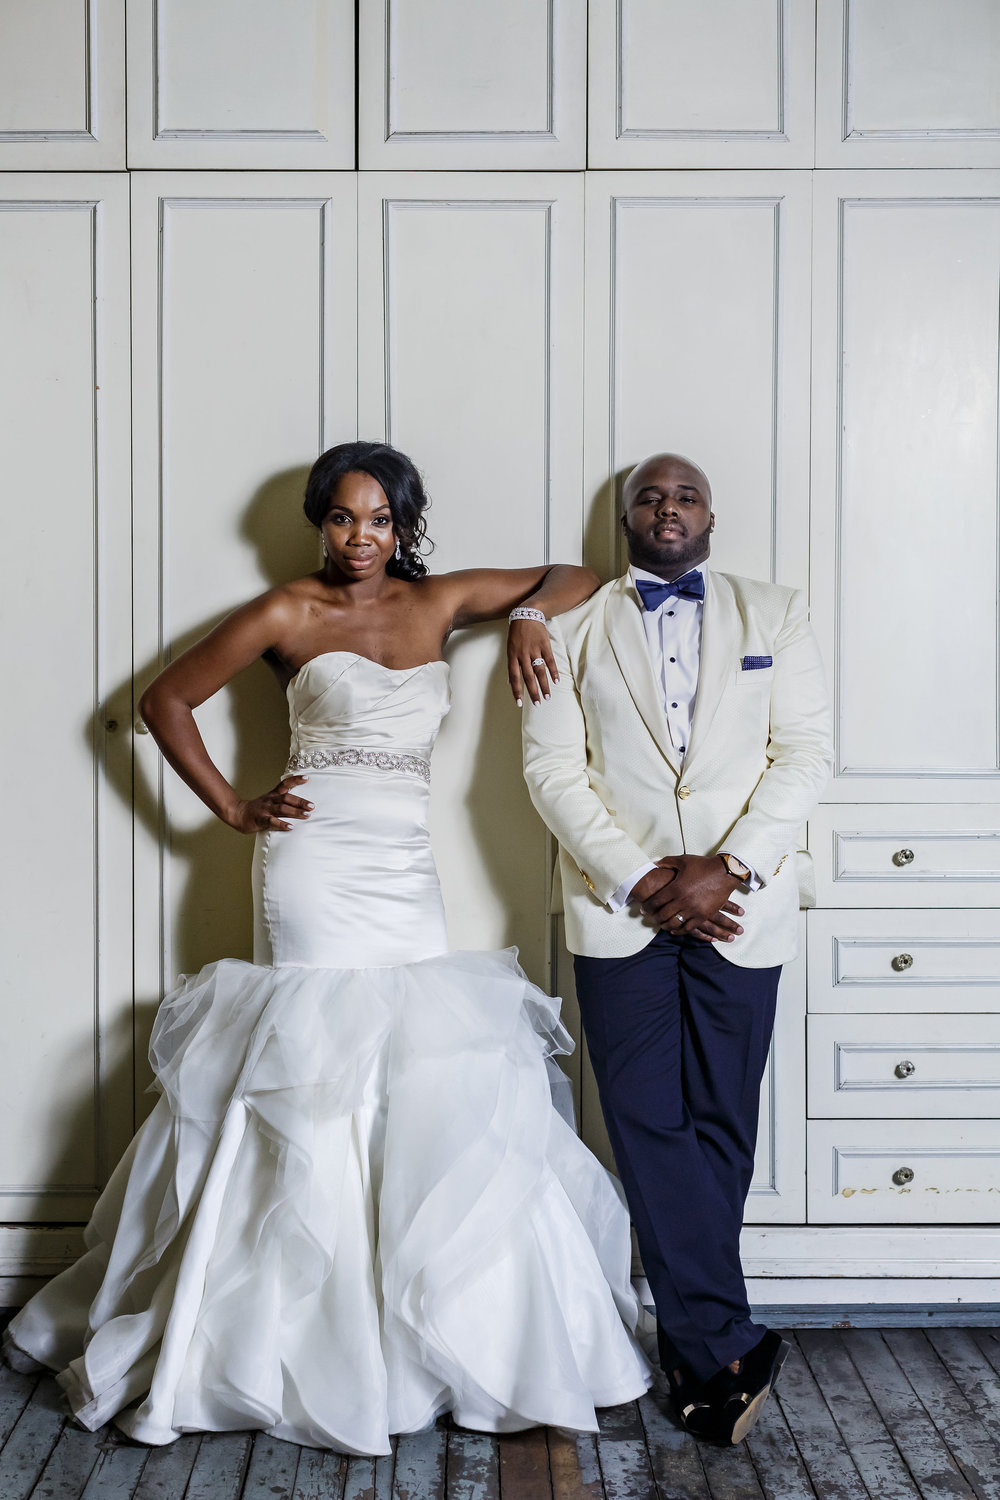 victorious-events-nyc-019-tiffany-donte-metropolitan-building-wedding-amy-anaiz.JPG